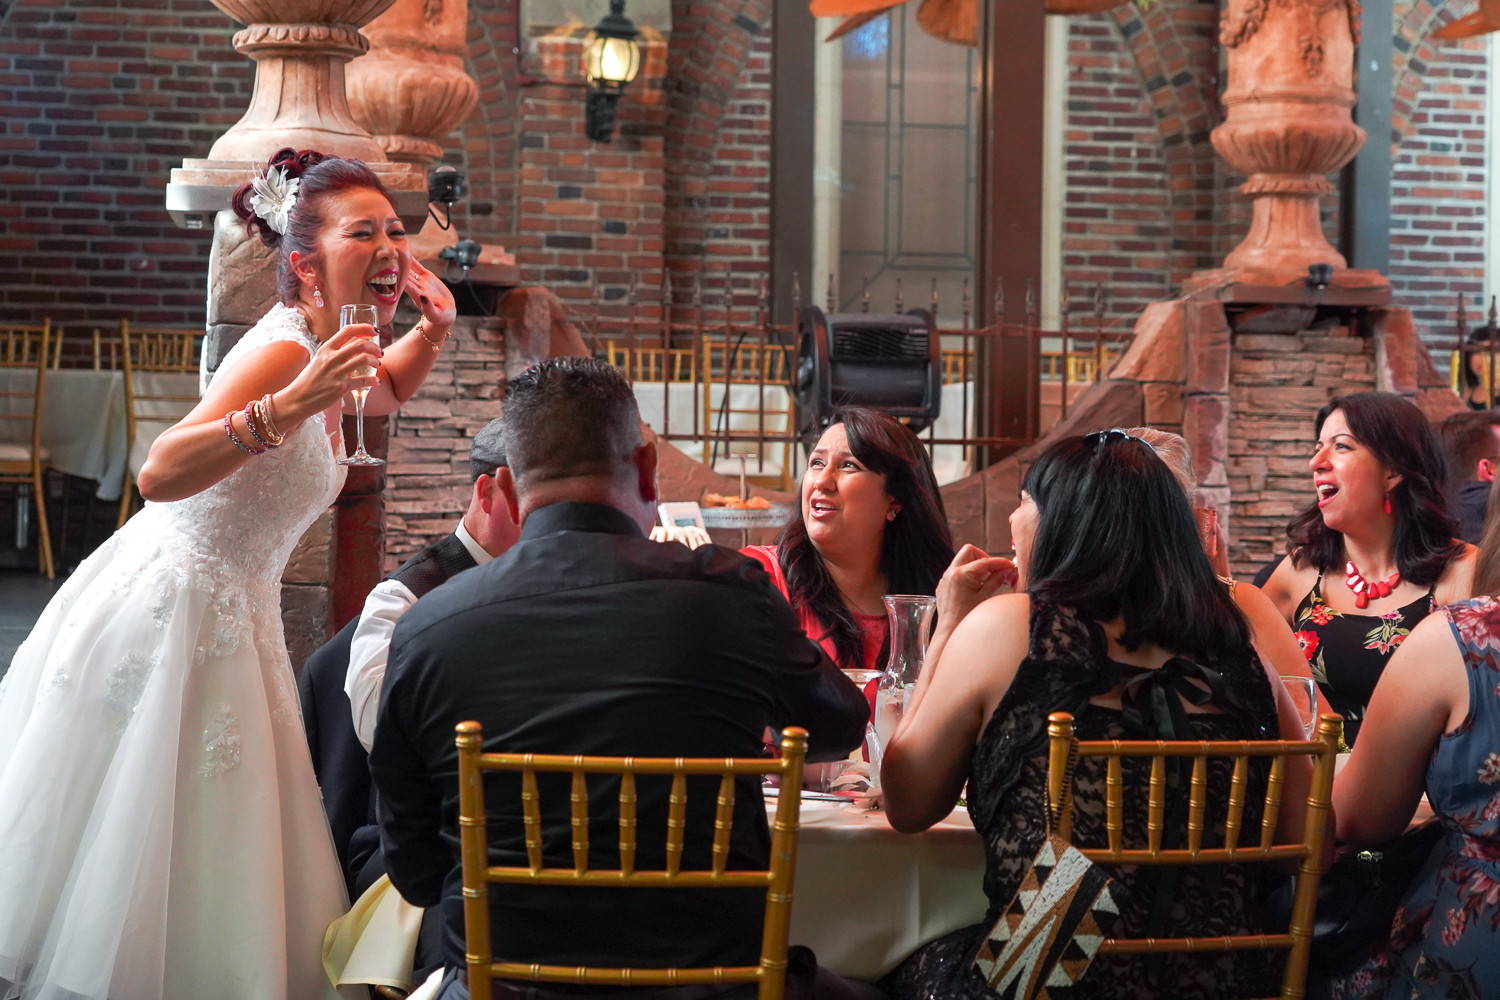 CATEGORY: Events LOCATION: Wedding Reception at Restaurant